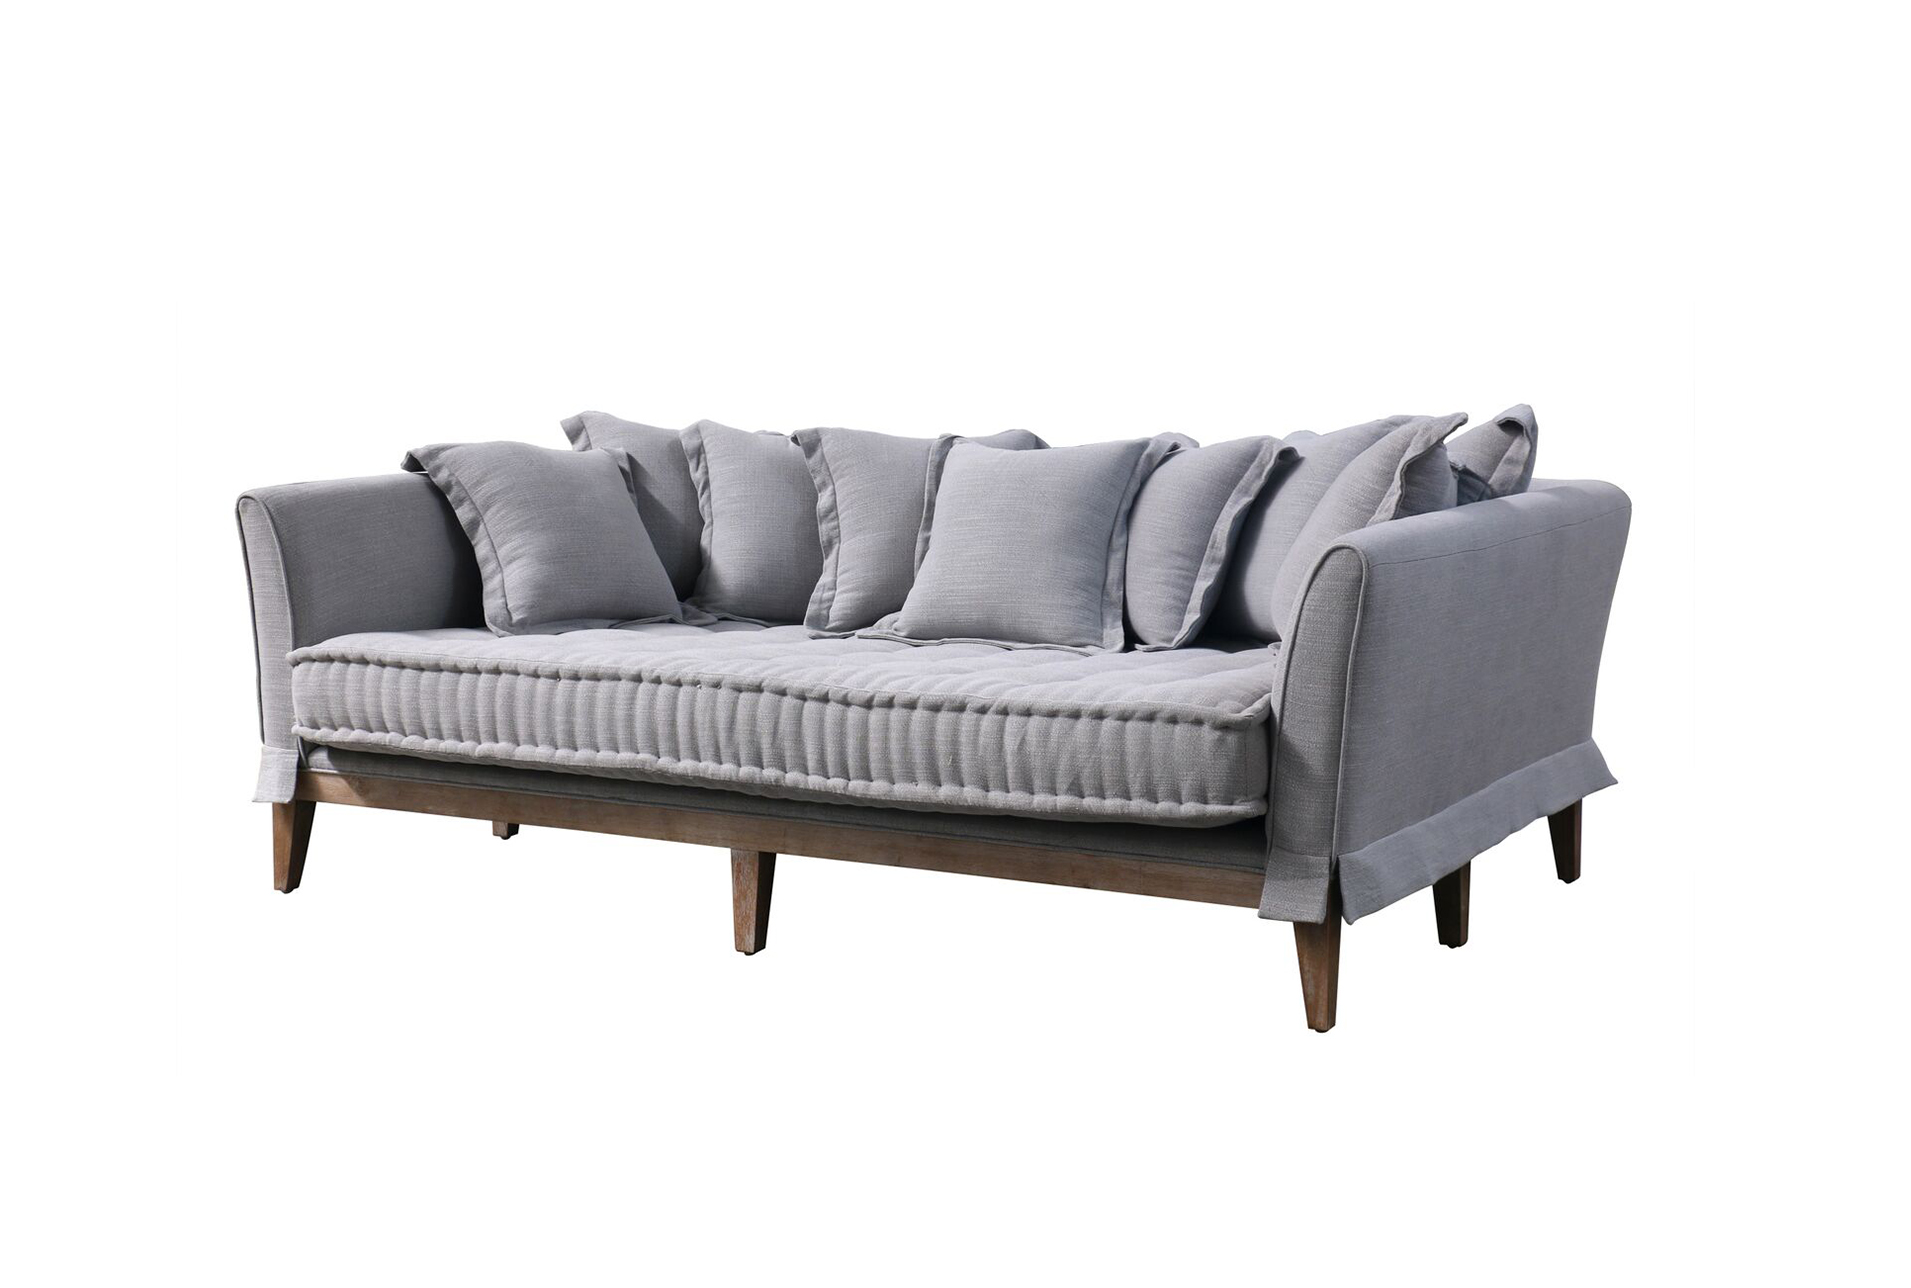 Lovely Pewter Linen Daybed Sofa   360 Elements